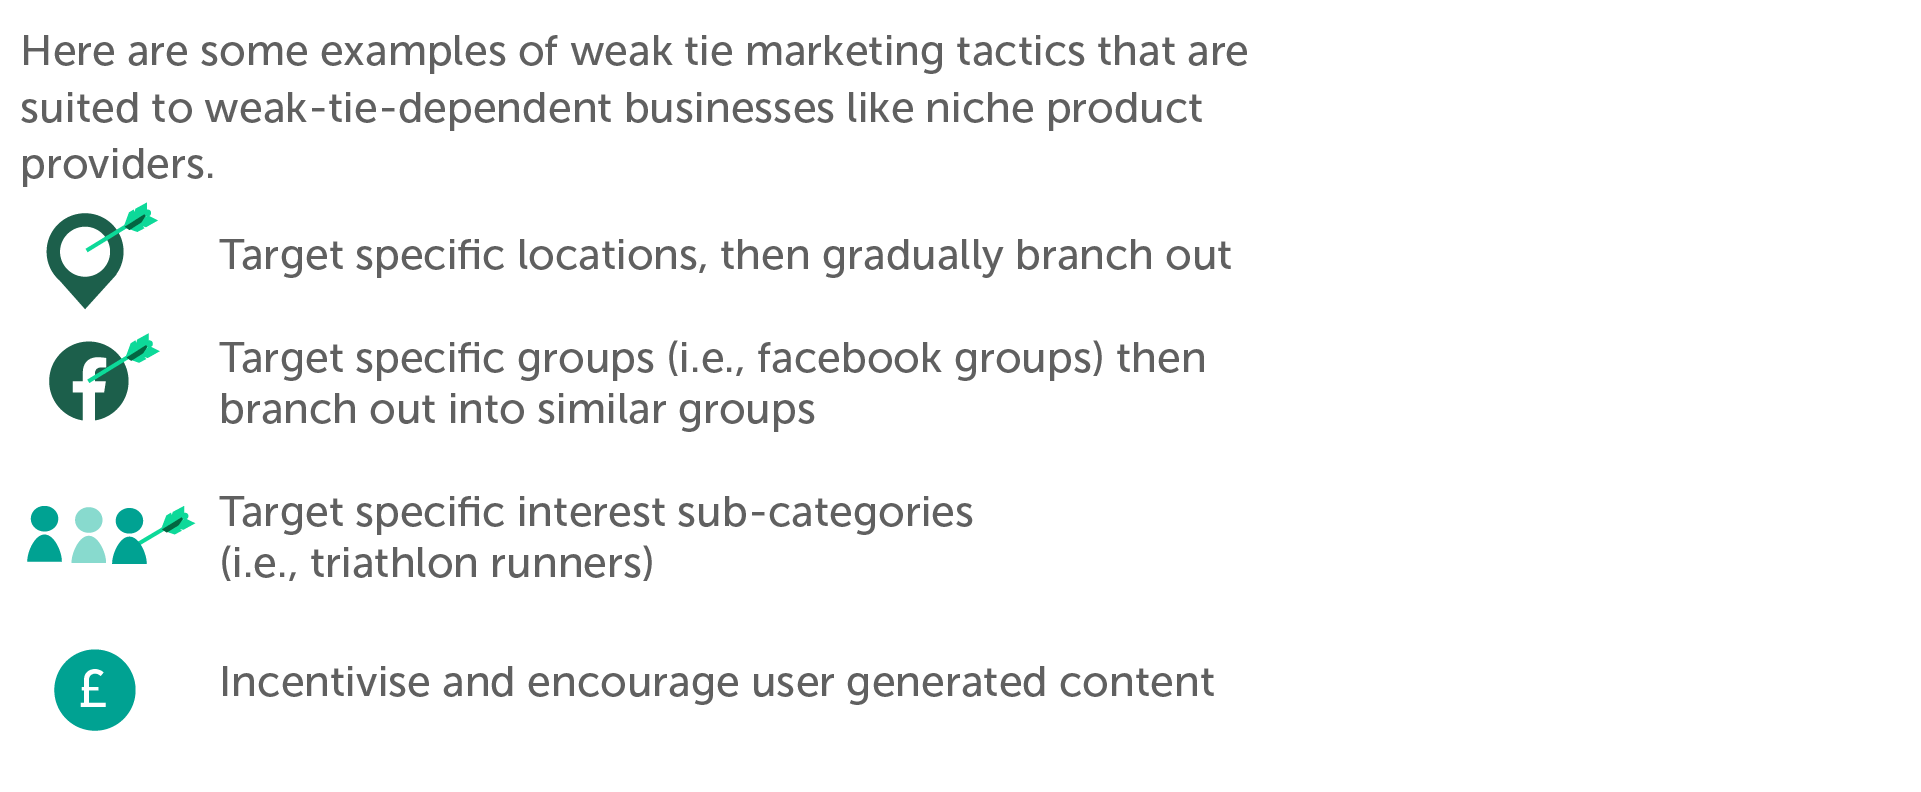 Here are some examples of weak tie marketing tactics that are suited to weak-tie-dependent businesses like niche product providers. Gradual expansion (branching out from specific locations) Target specific groups (i.e., facebook groups) then branch out into similar groups Target specific interest sub-categories (i.e., triathlon runners) Incentivise and encourage user-generated content